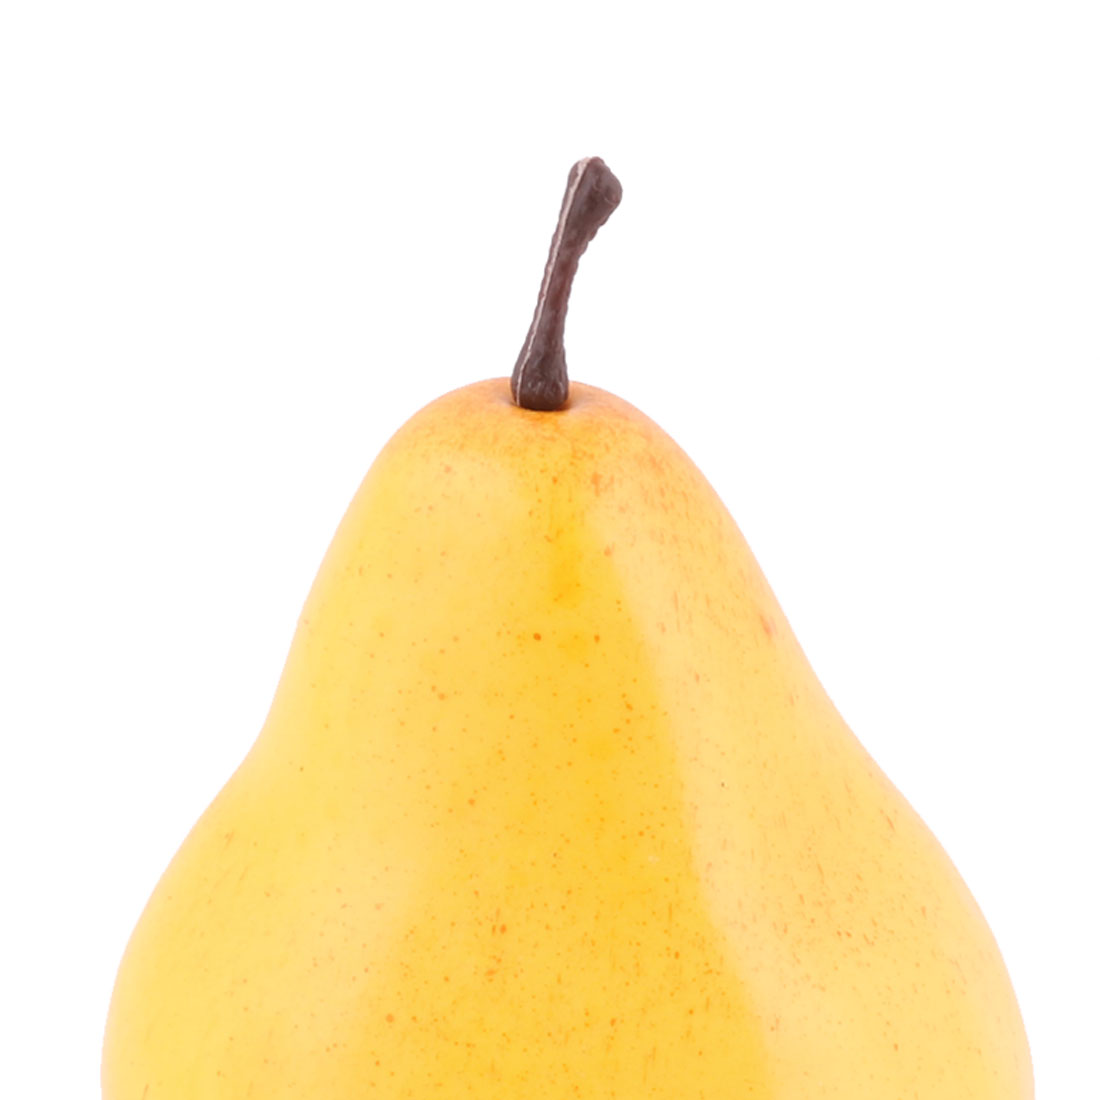 Household Table Decor Foam Handmade Simulation Artificial Fruit Pear Yellow 3pcs - image 2 of 3